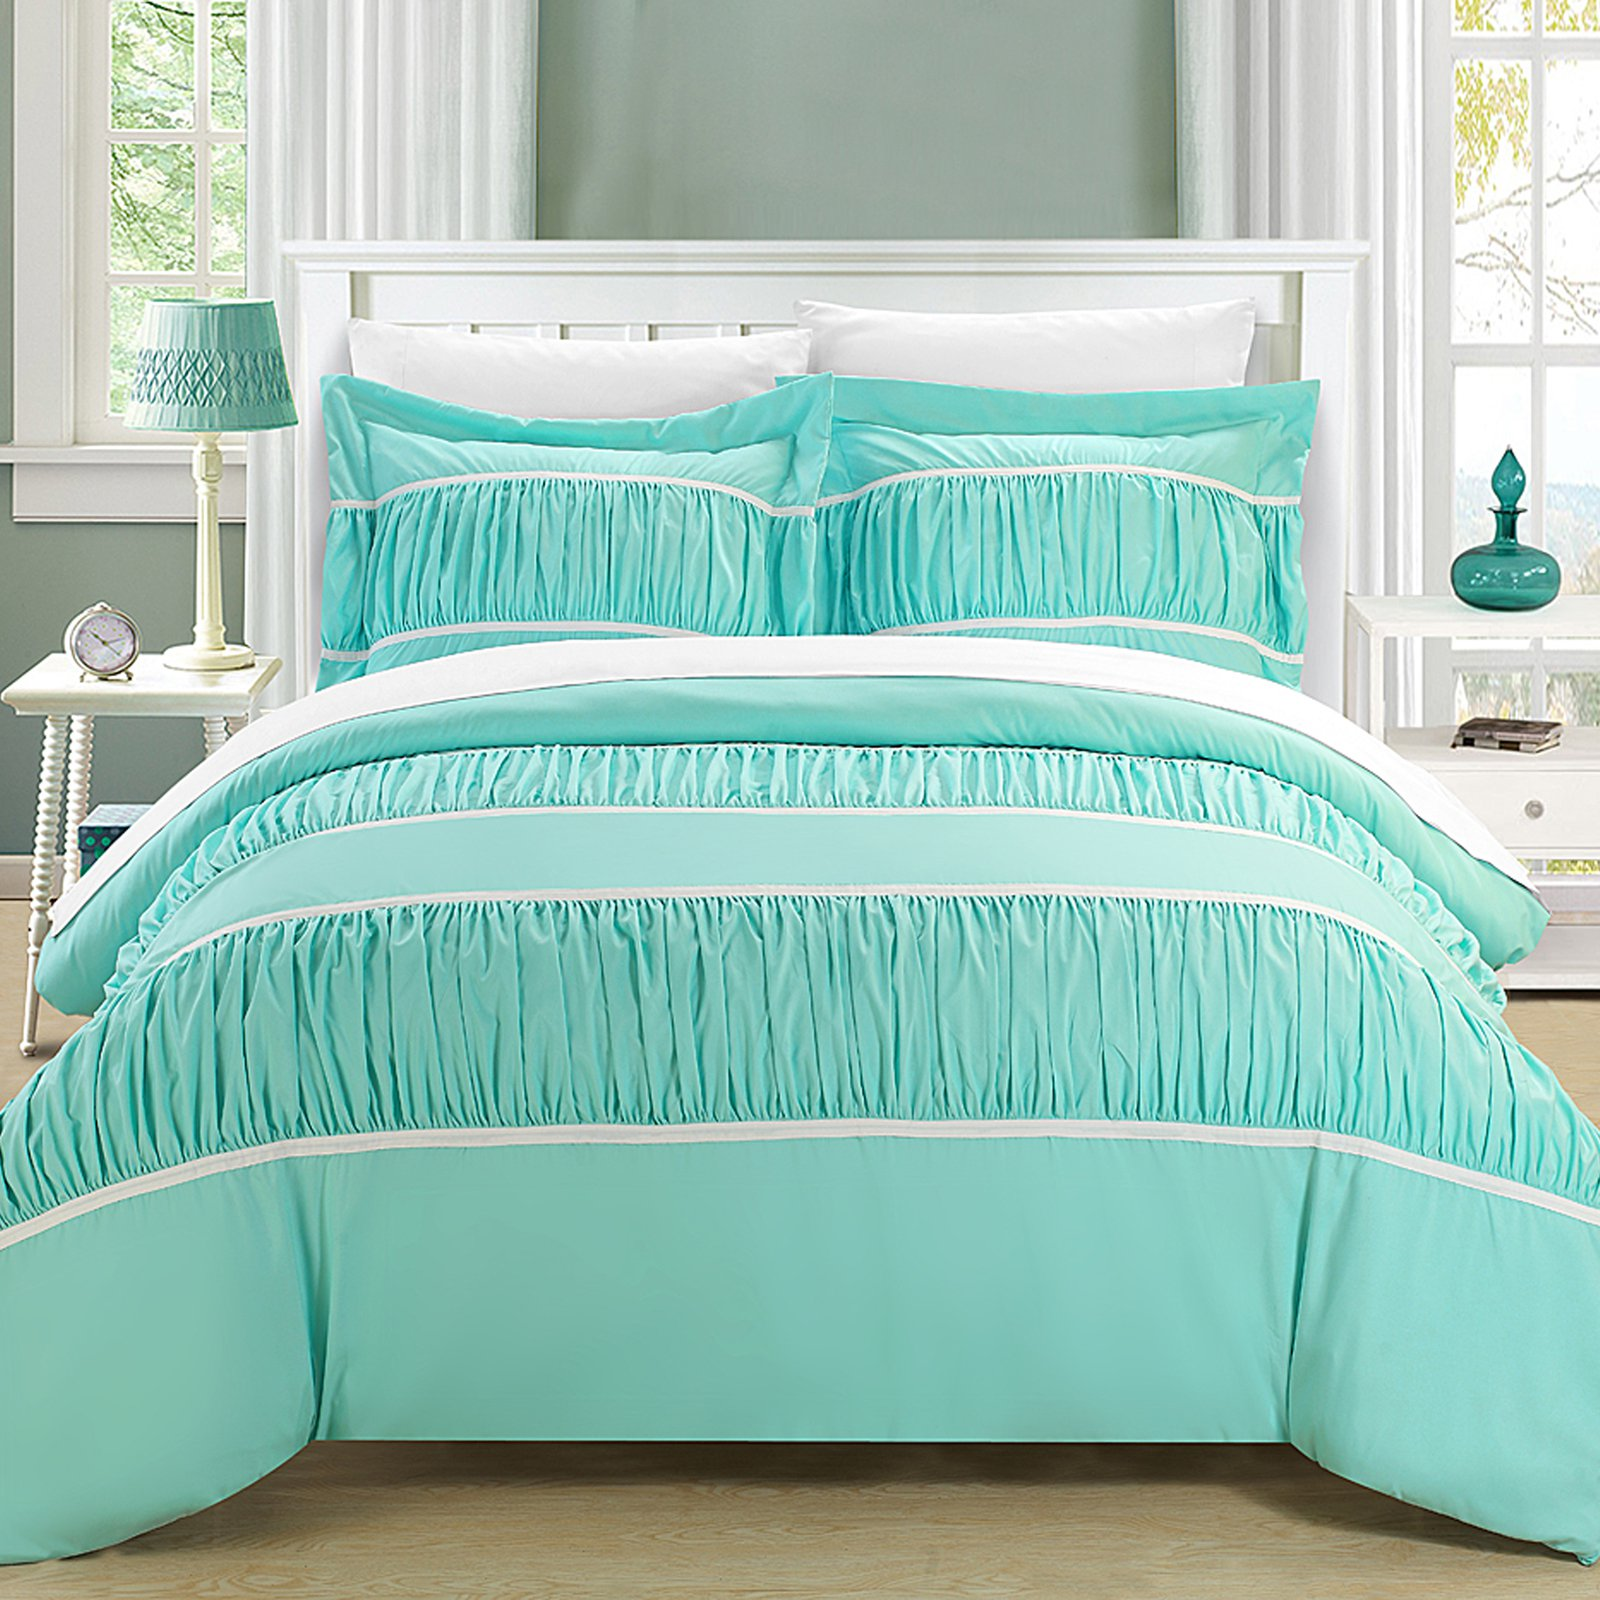 Chic Home Elizabeth 3-Piece Duvet Cover Set